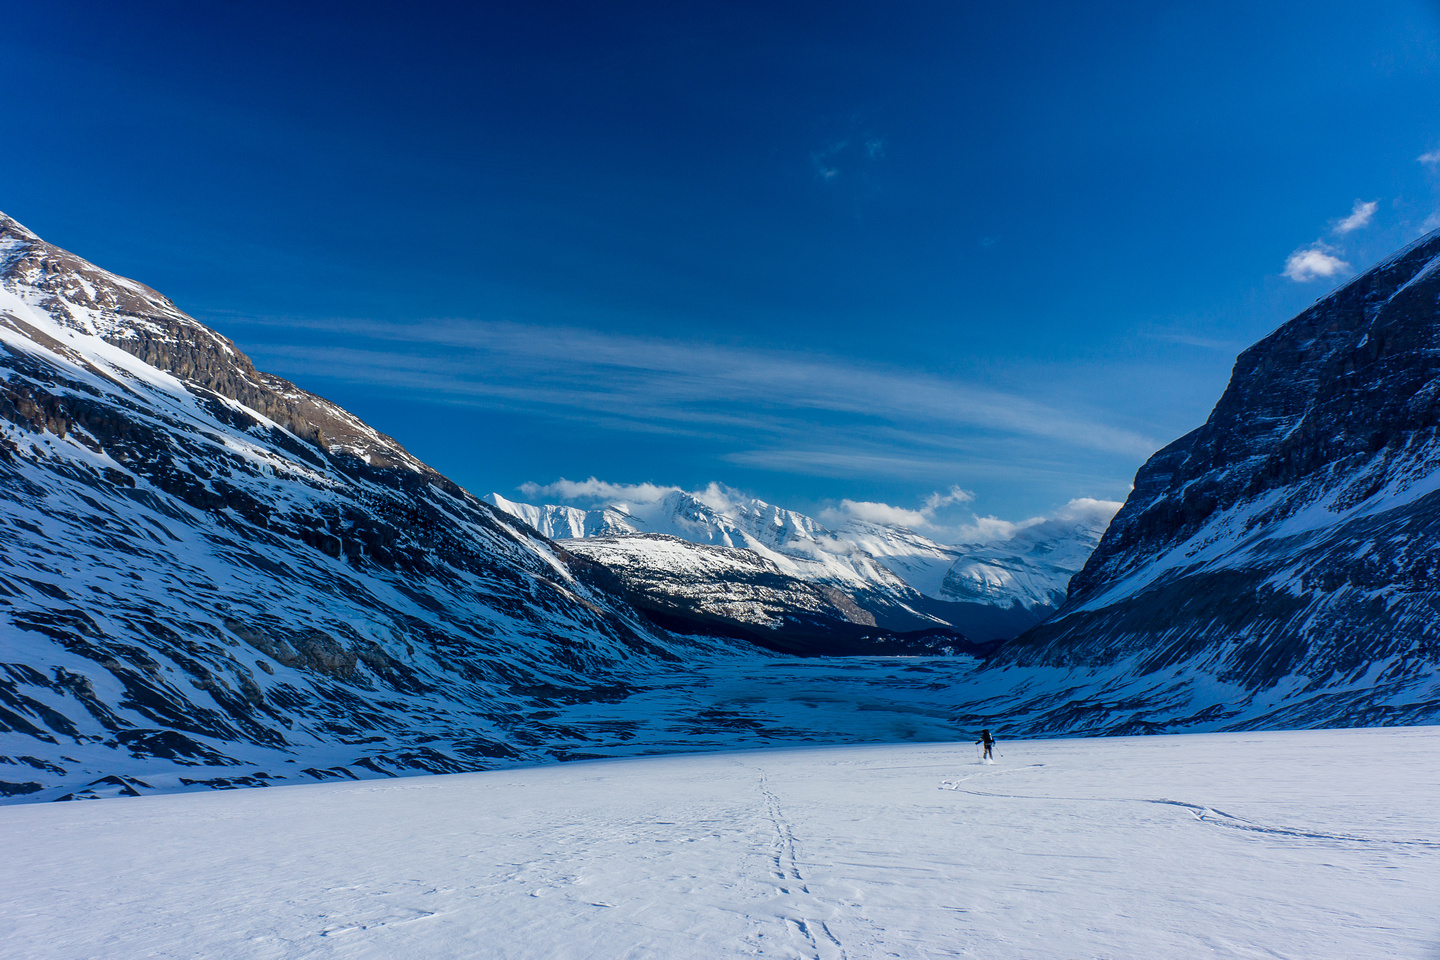 Skiing down the Saskatchewan Glacier.